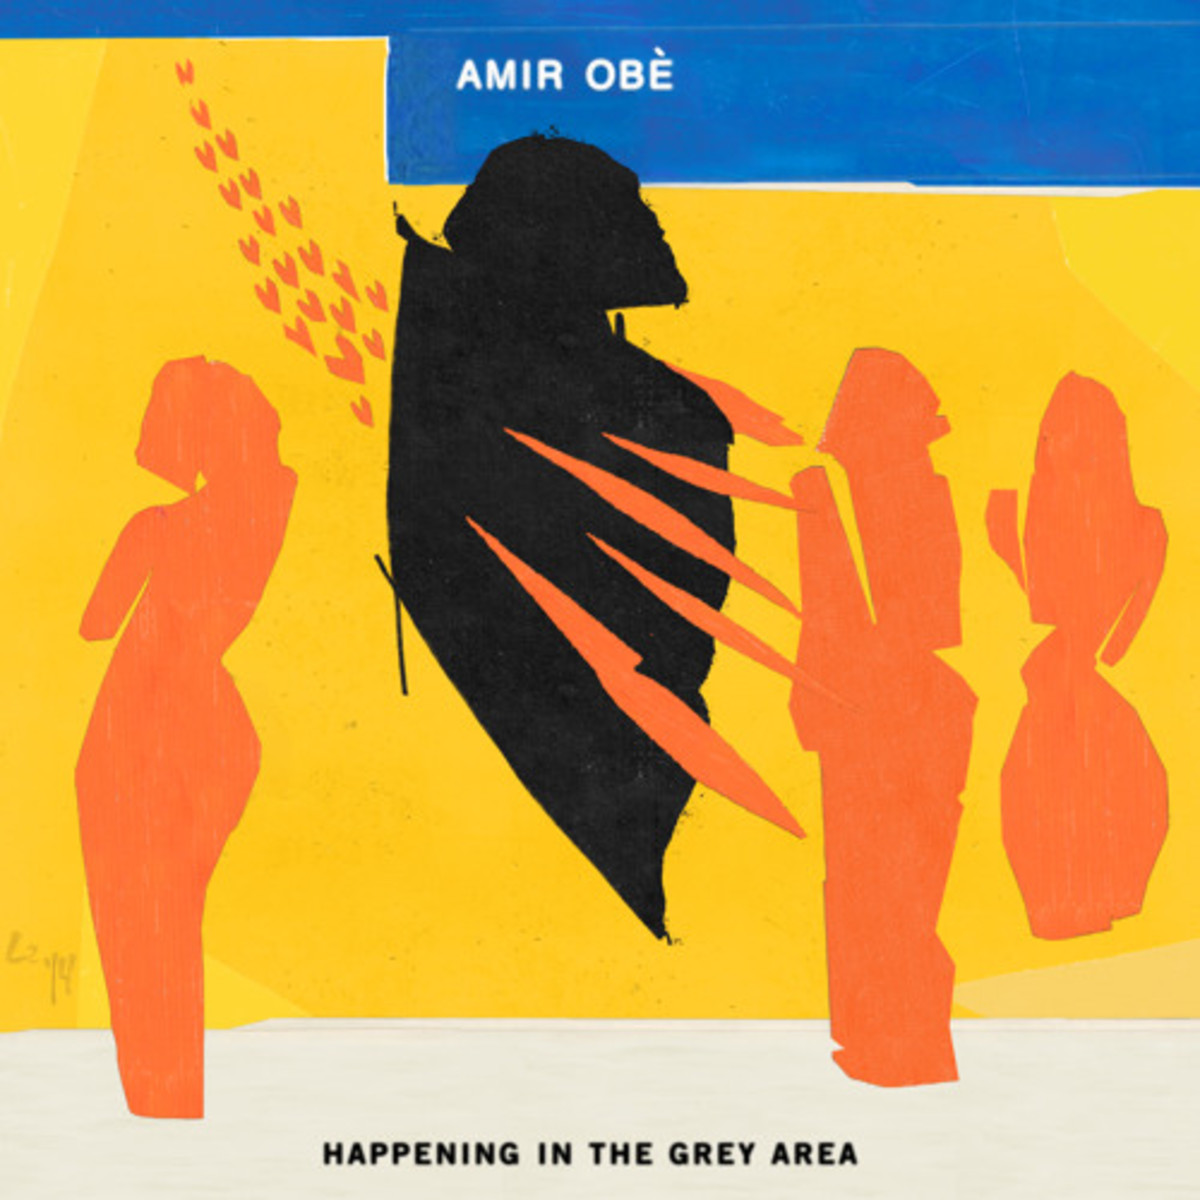 amir-obe-happening-in-the-grey-area.jpg